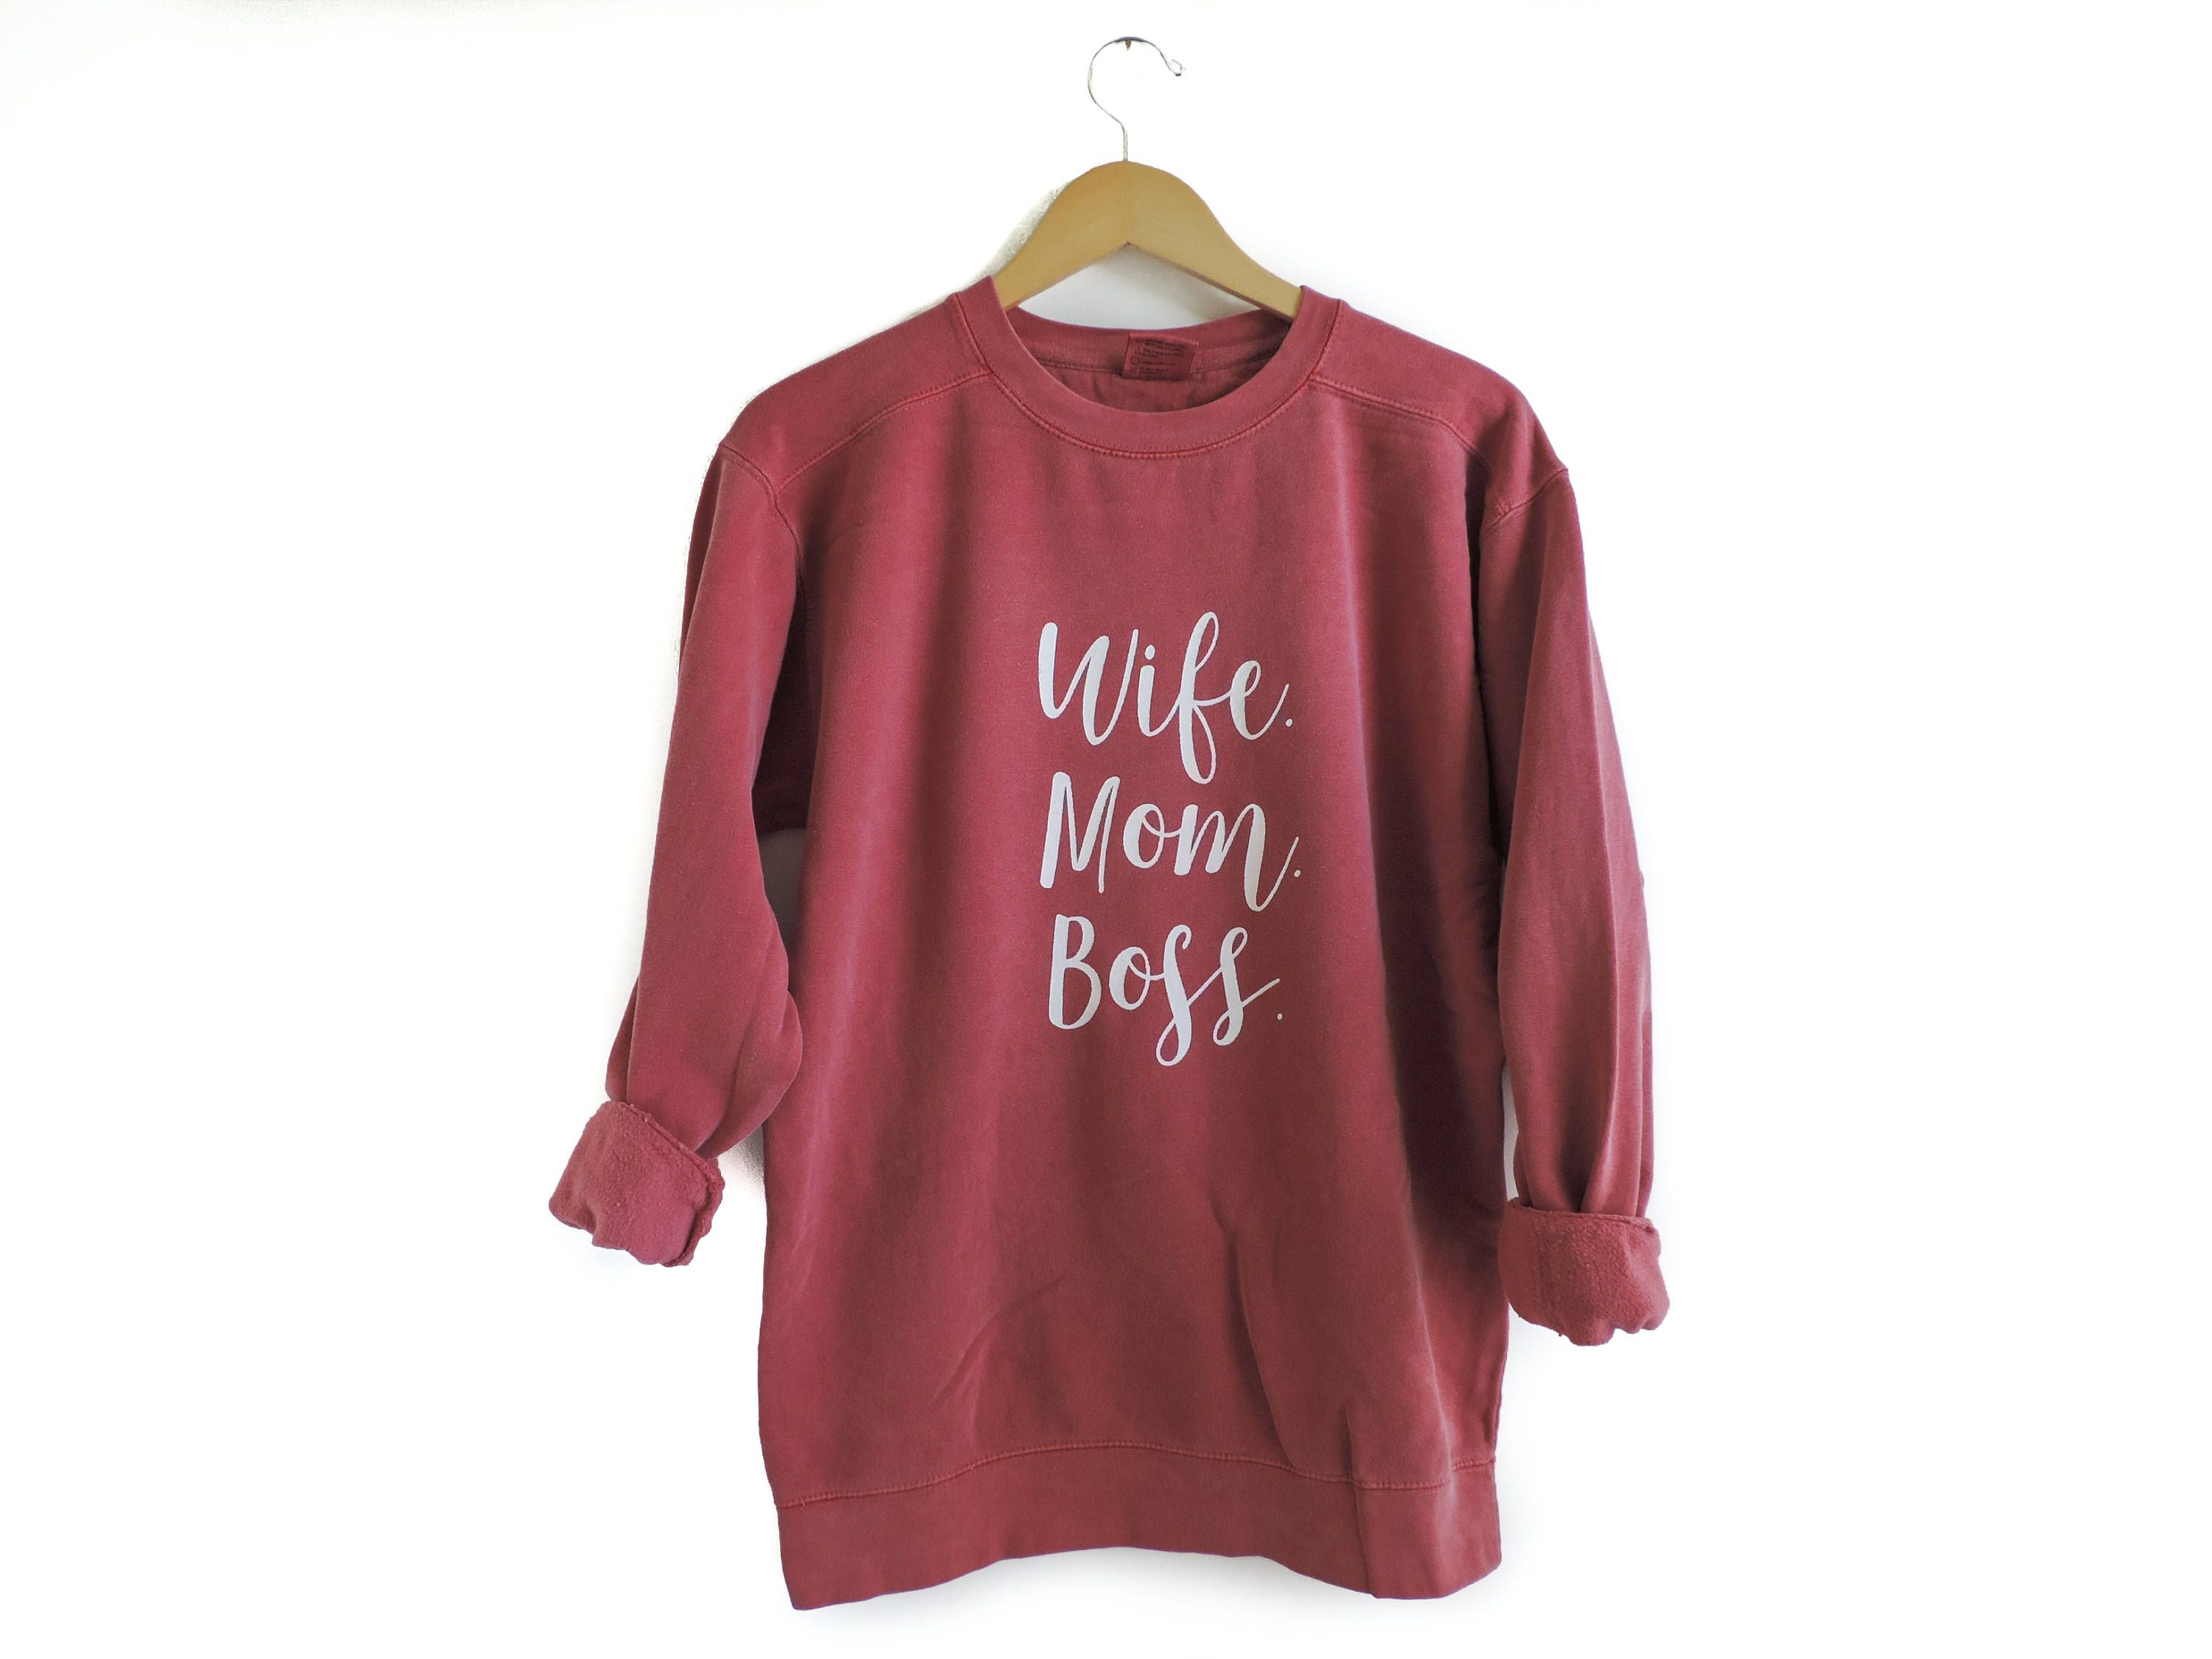 New Mom Boss Wife Crewneck Sweatshirt Pullover You Pick Color